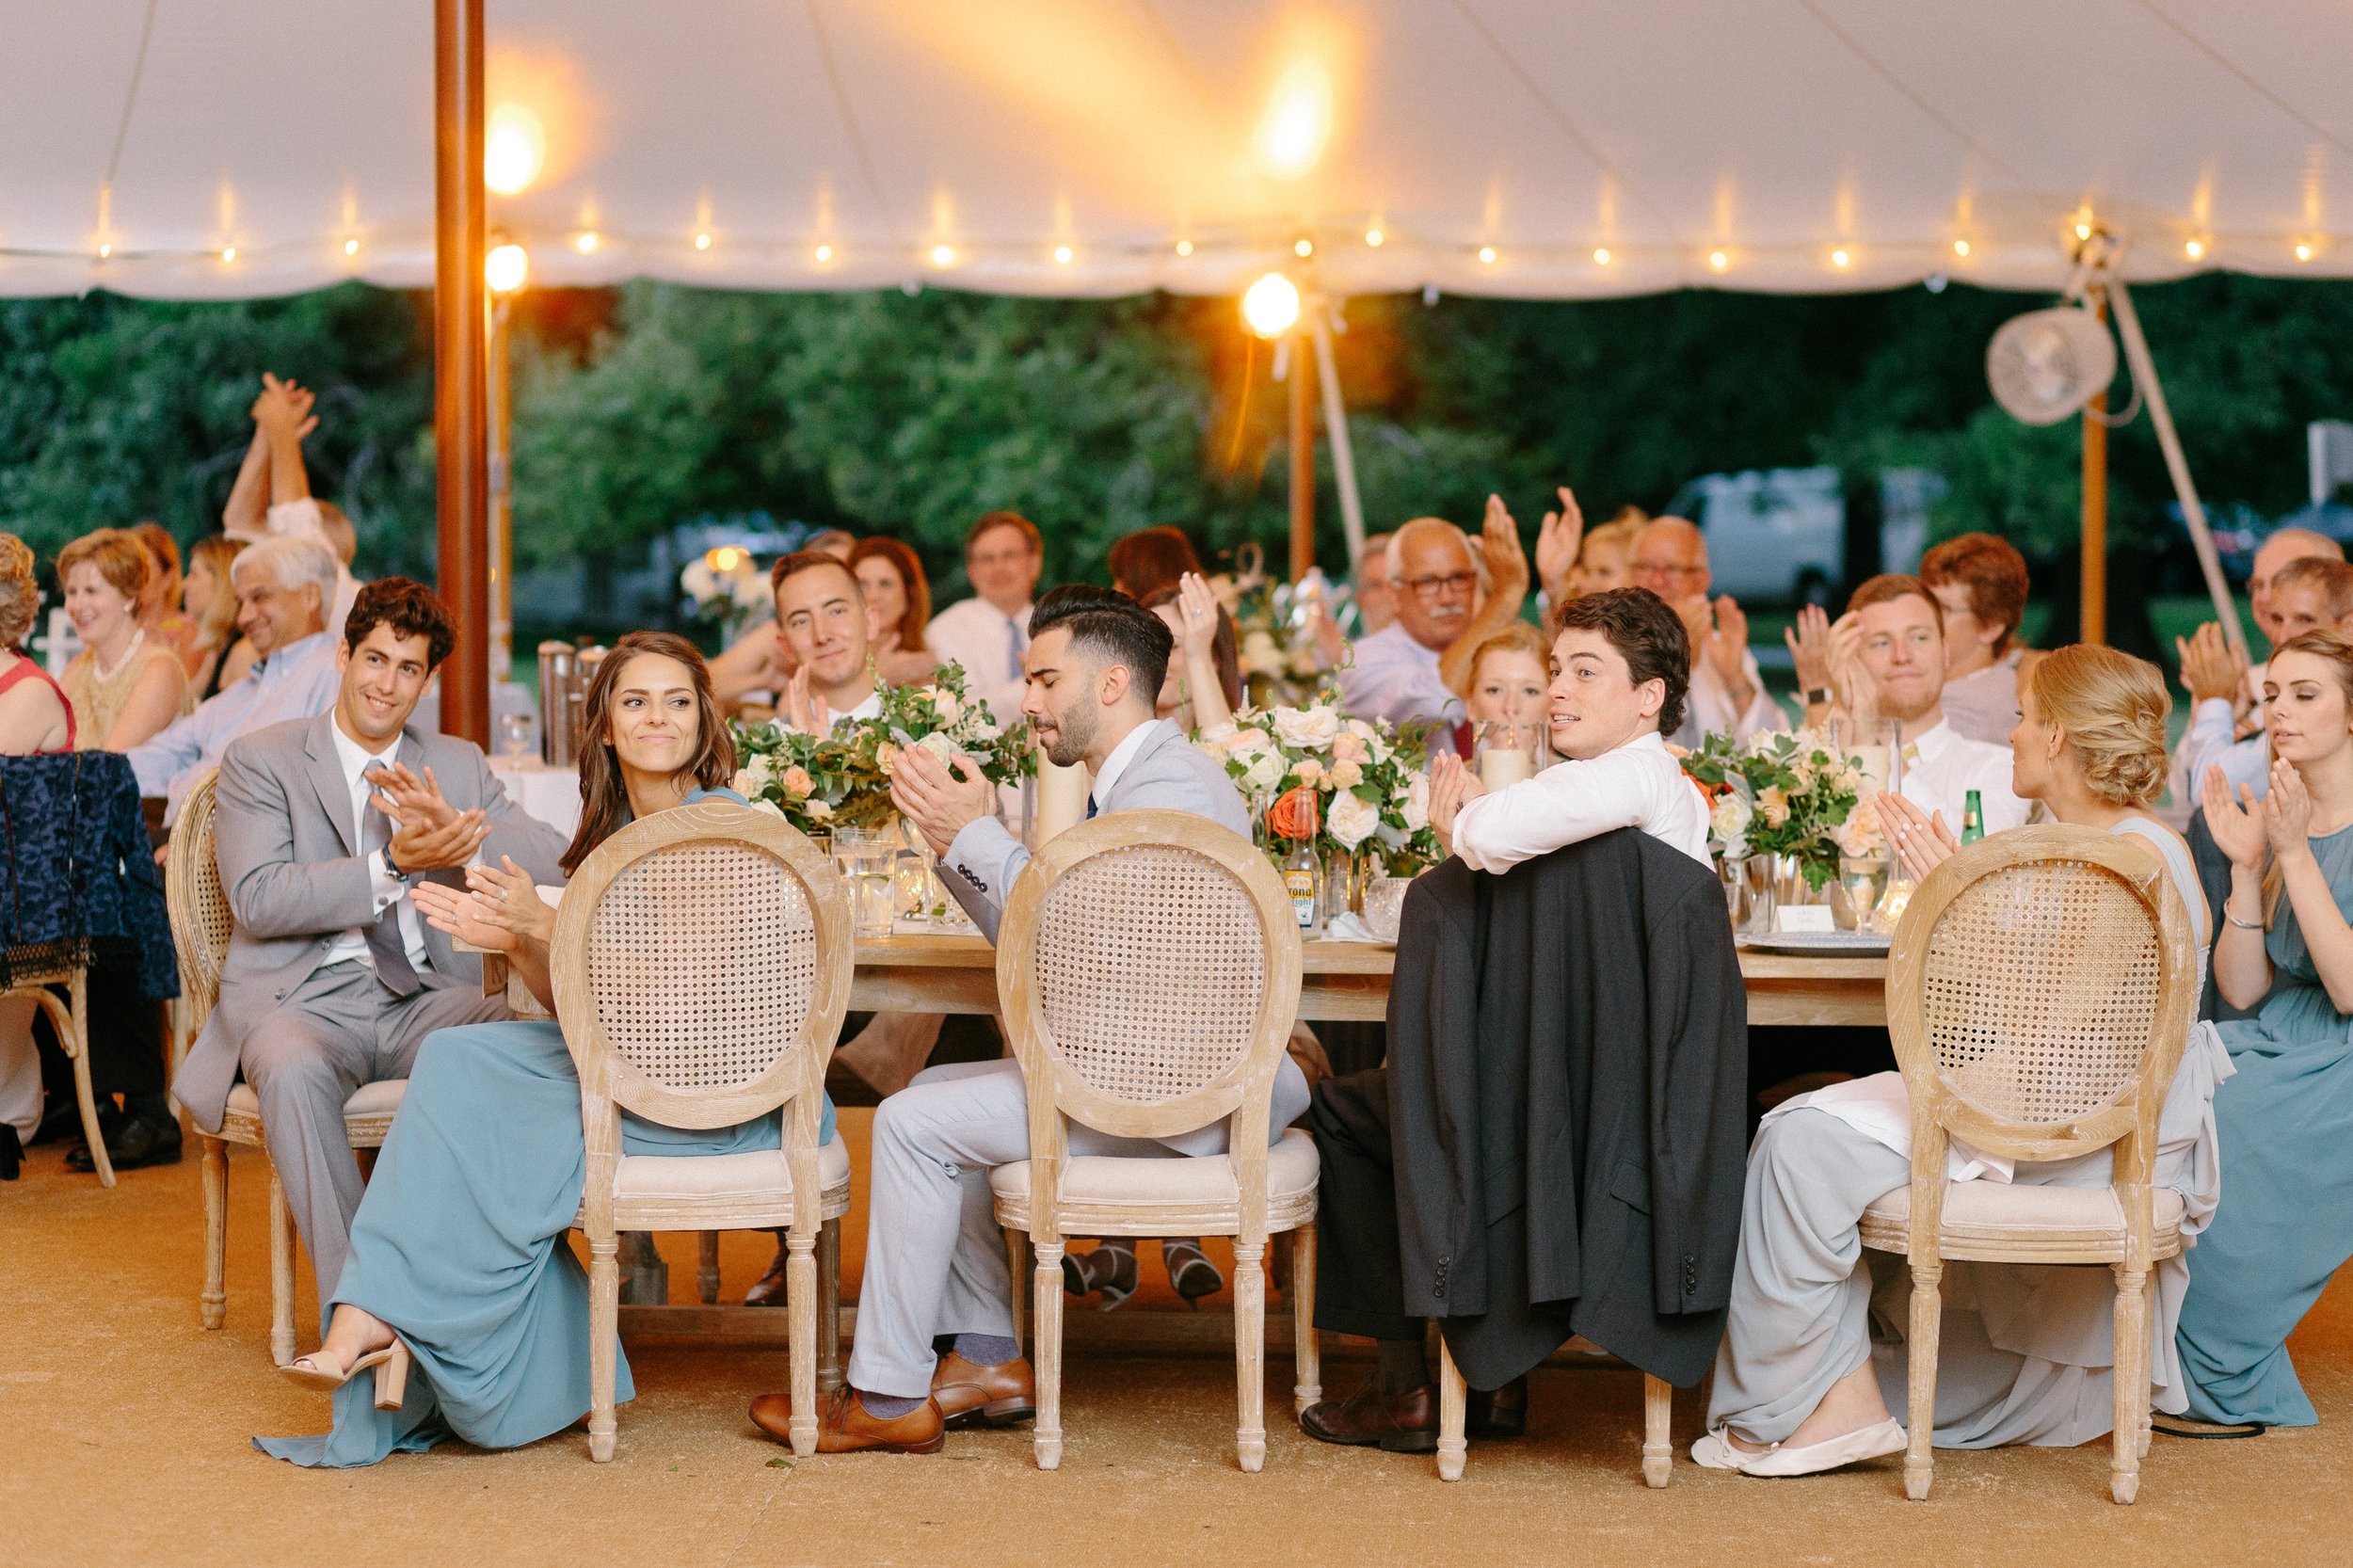 happiest-wedding-guests-ever-eastern-shore-wedding